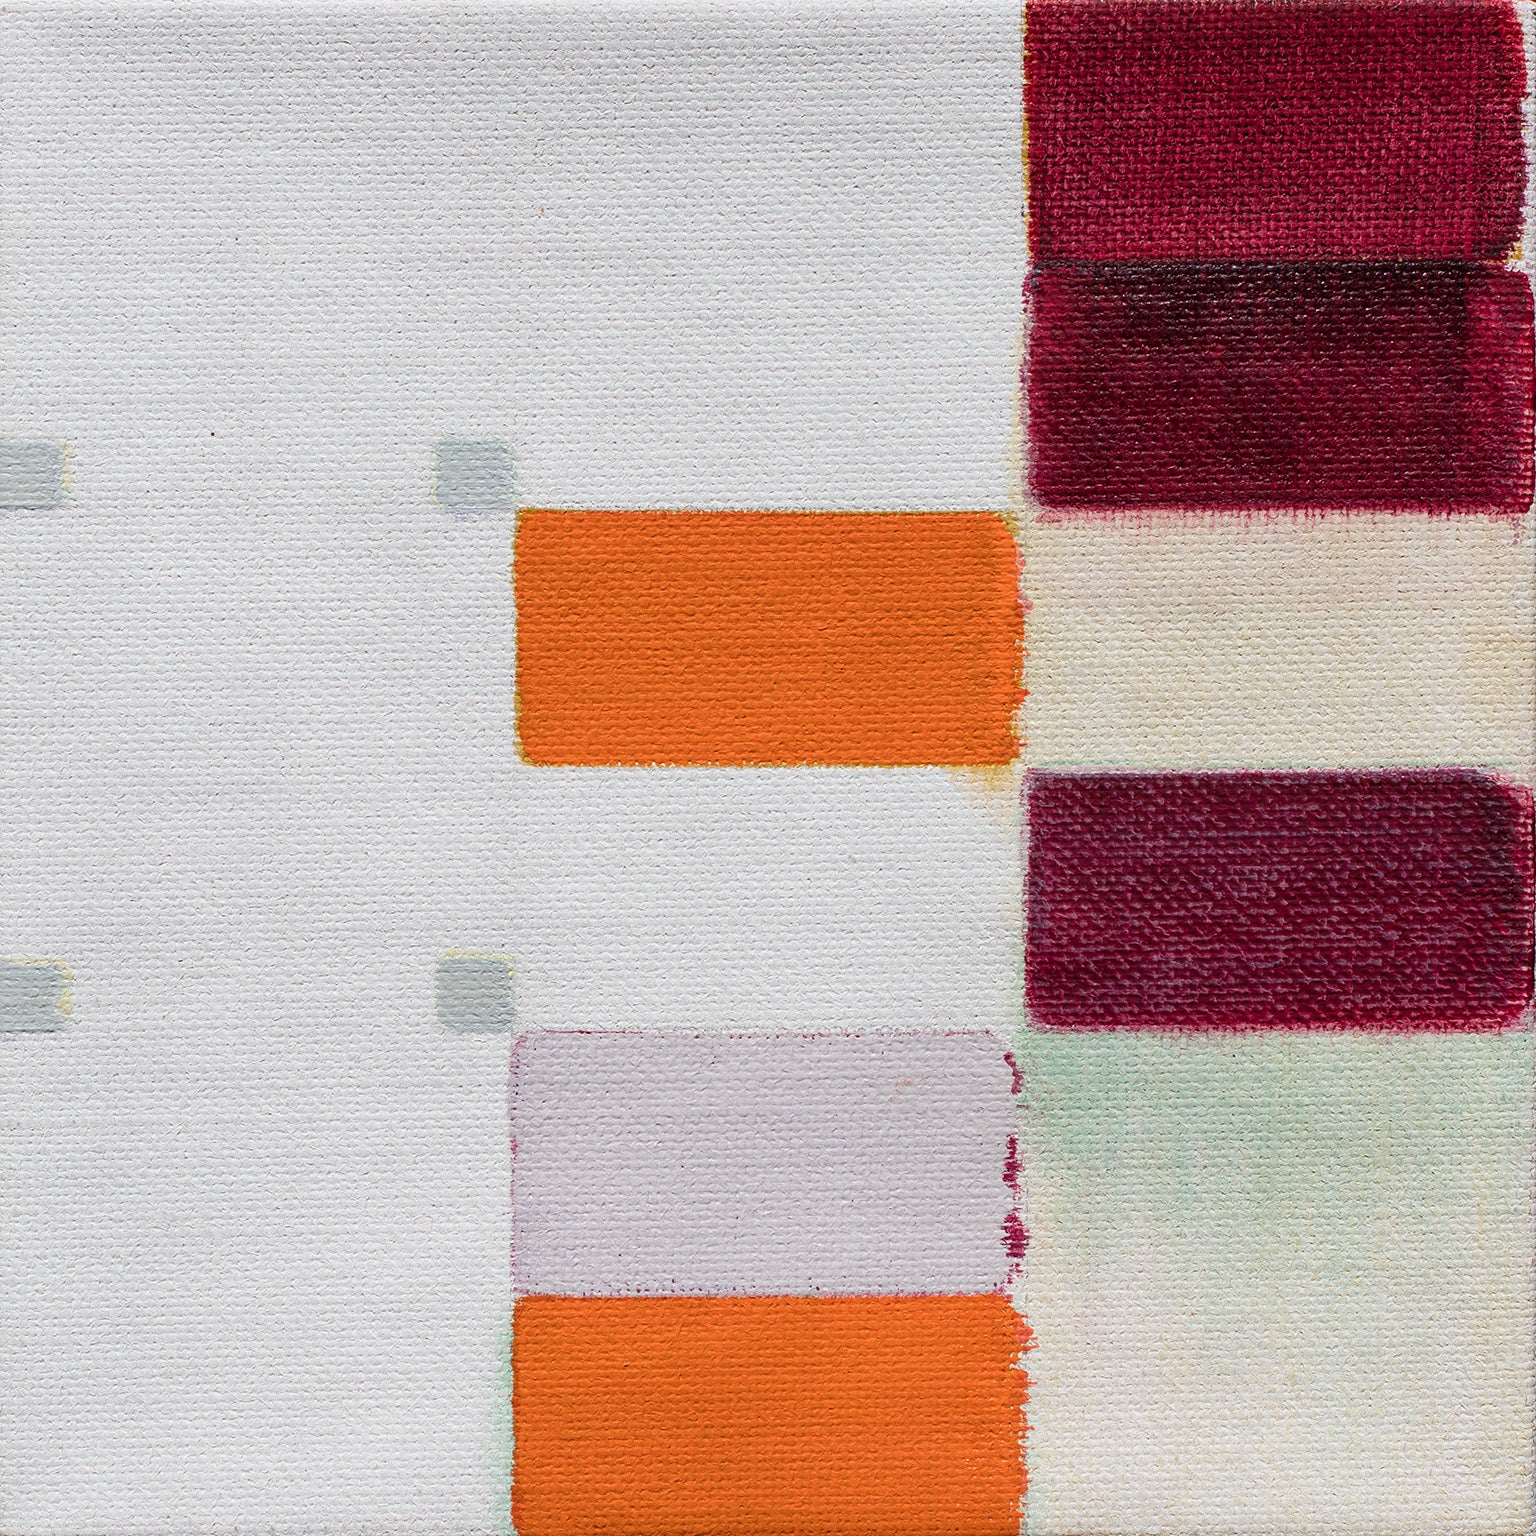 Untitled (9) - Geometric Abstract Oil Painting with Red and Orange